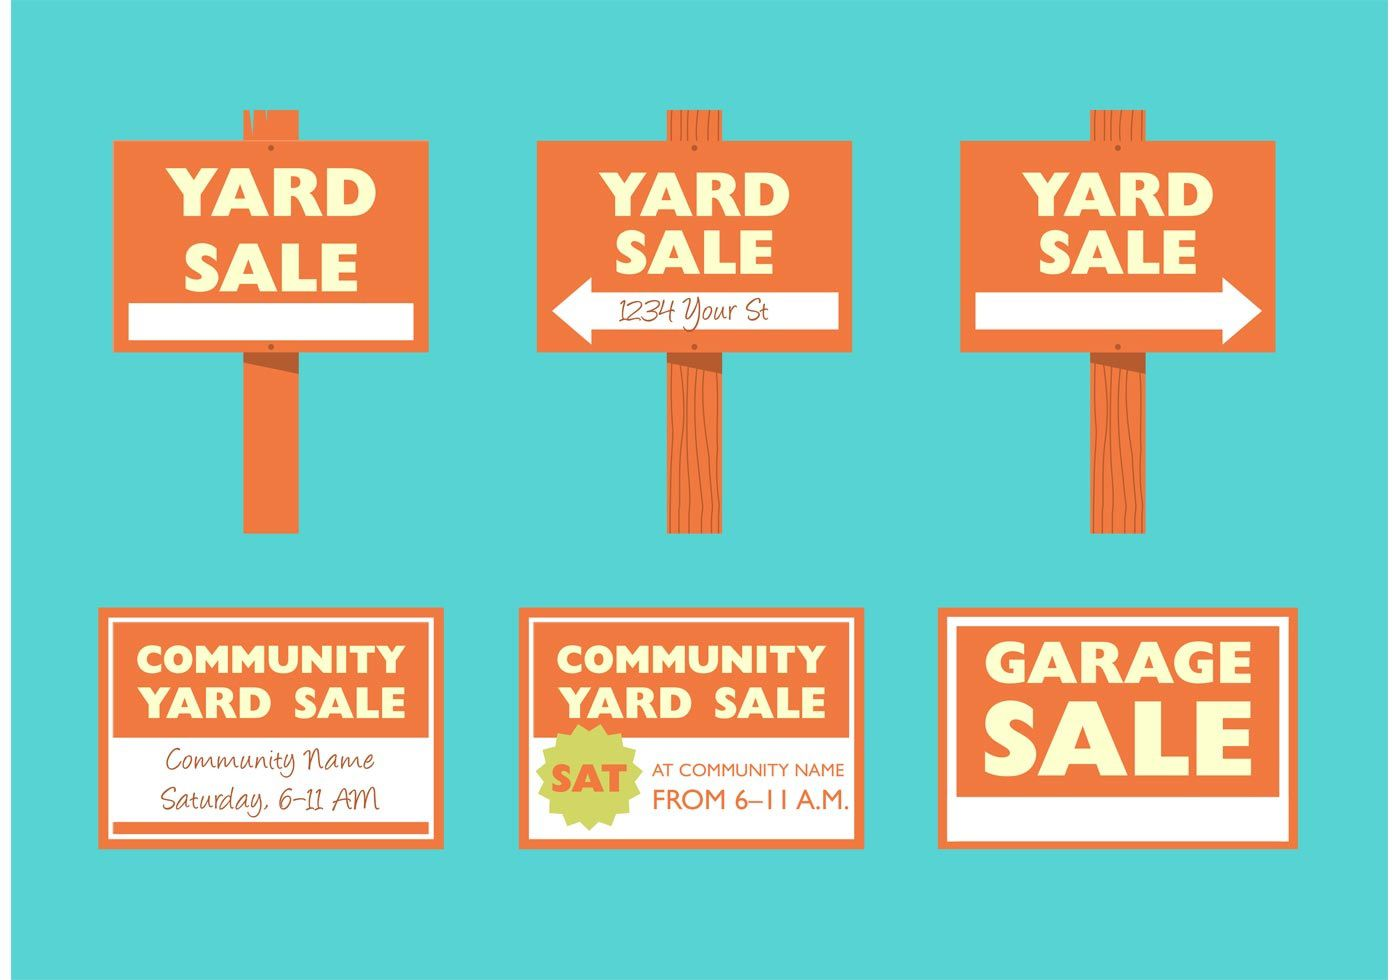 008 Staggering Garage Sale Sign Template Photo  Flyer Microsoft Word Community Yard Free RummageFull